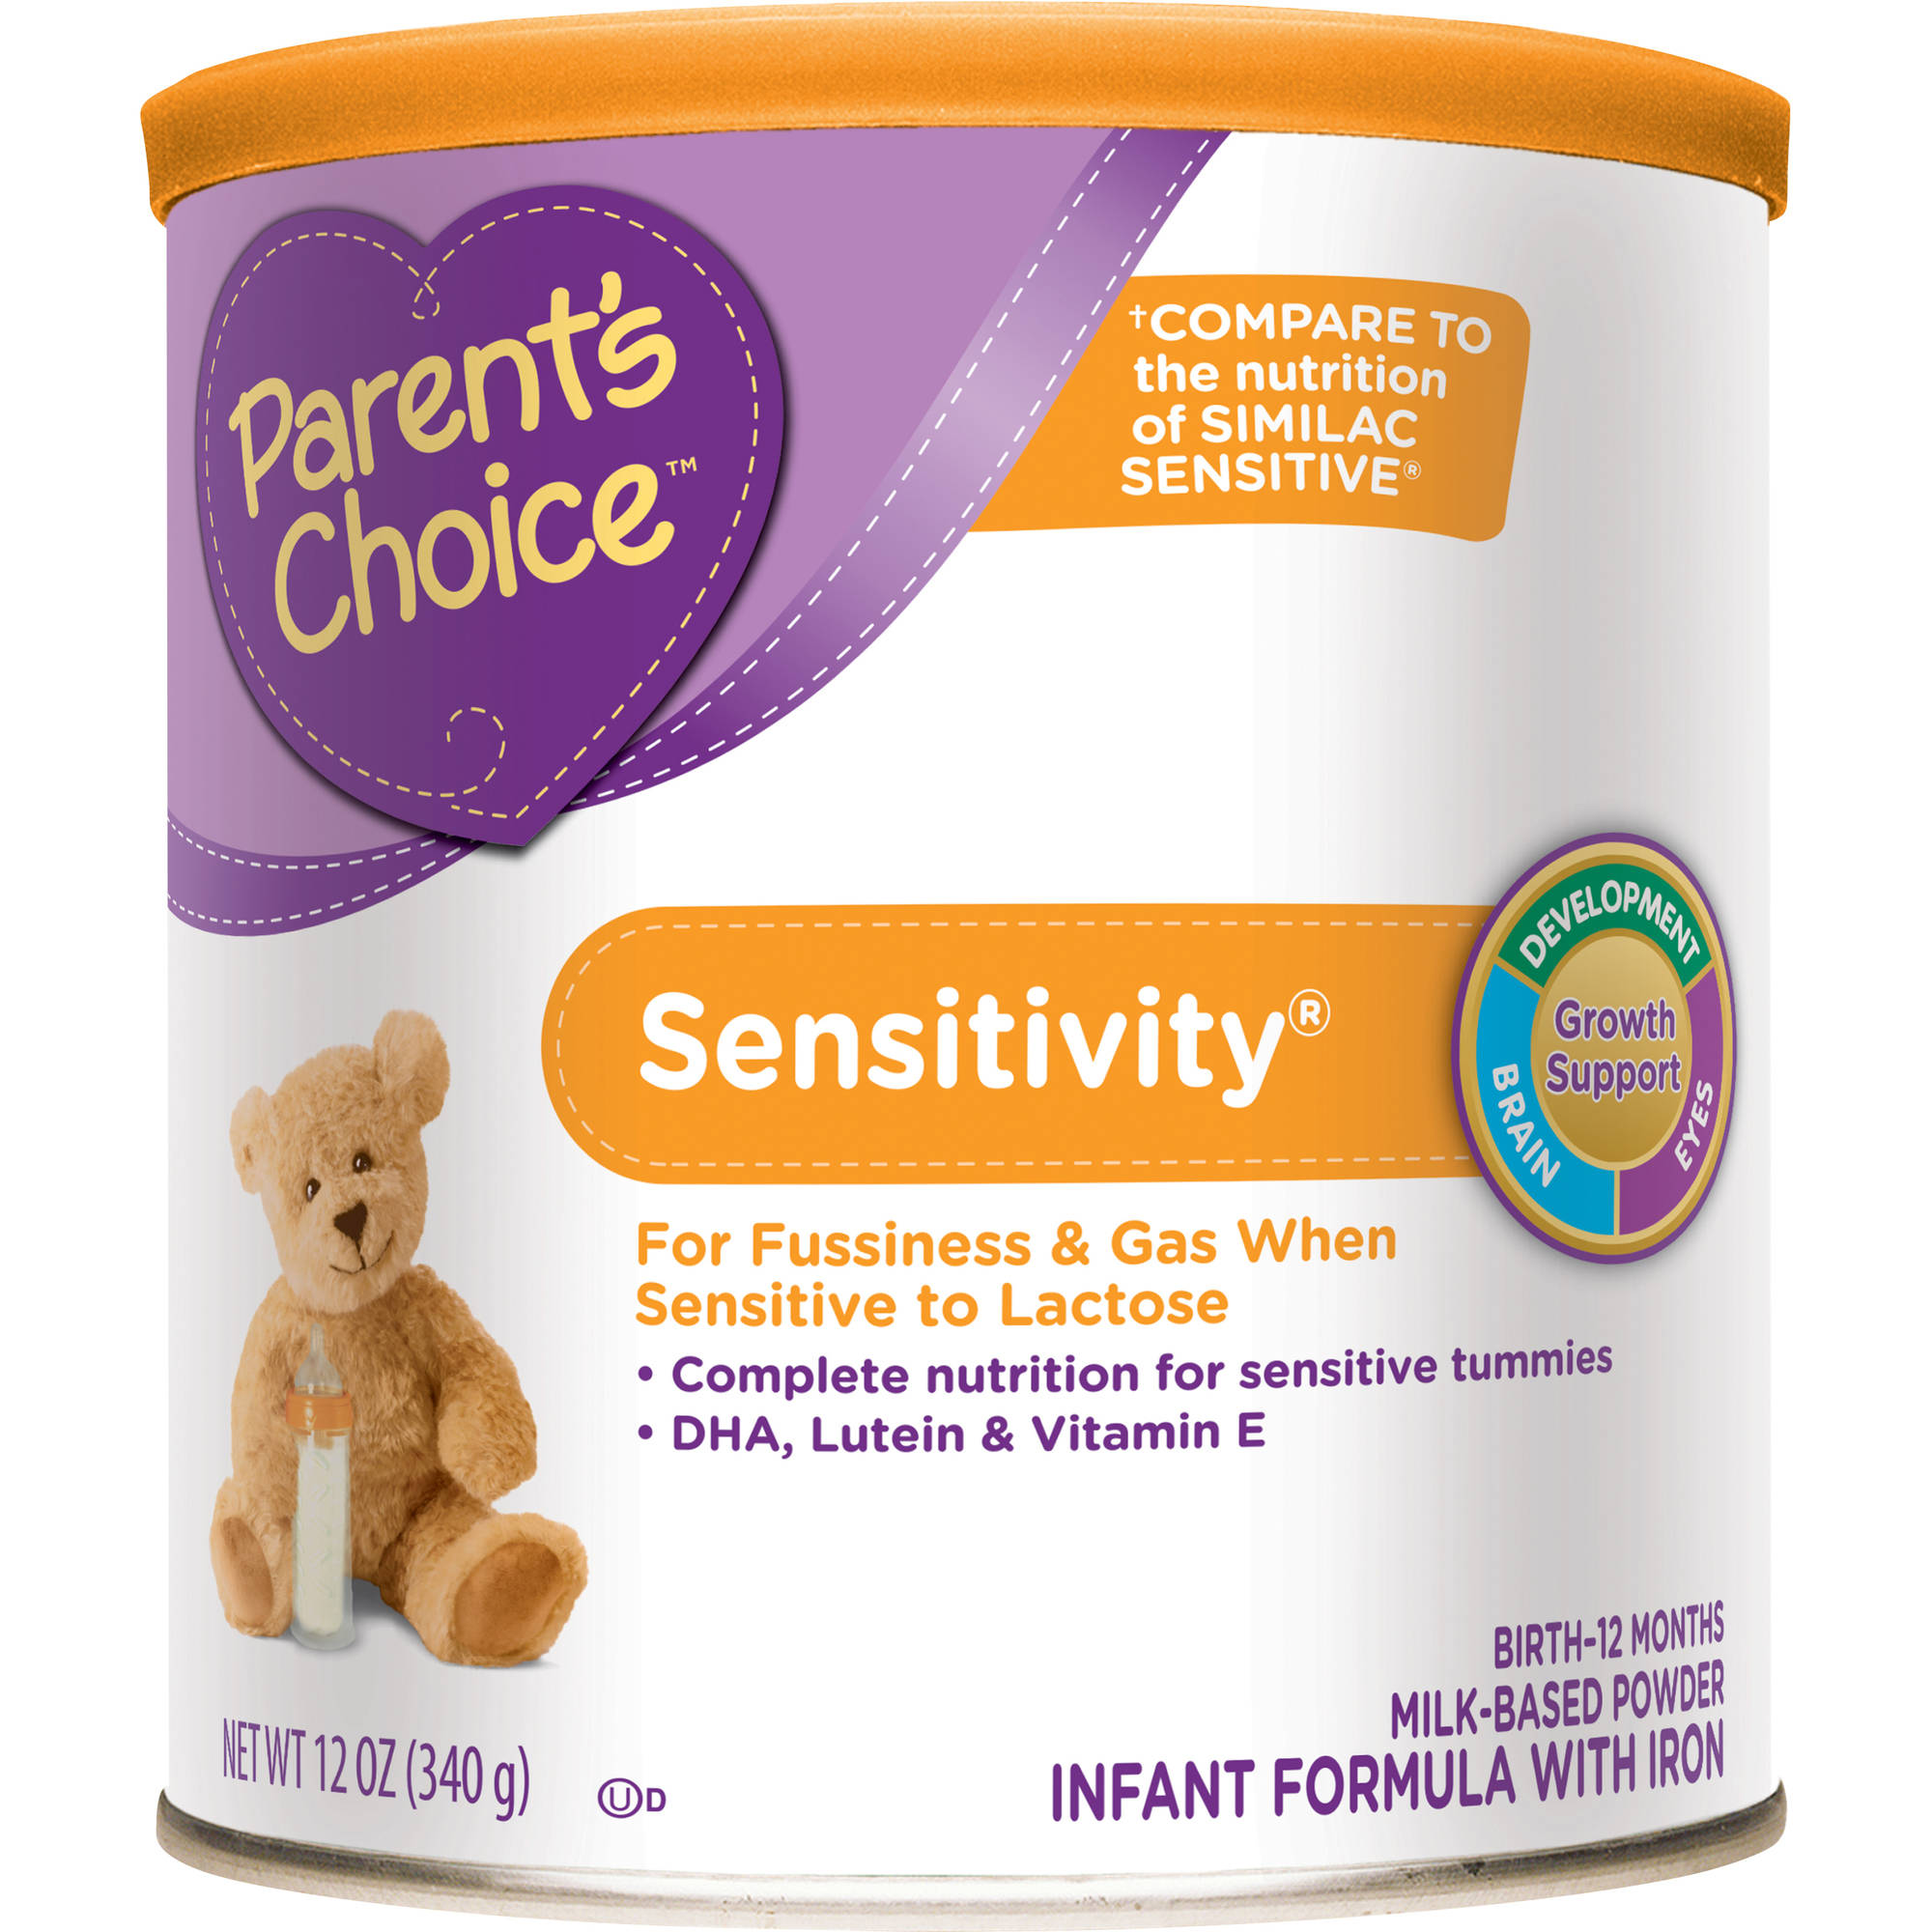 Parent's Choice Sensitivity Powder Infant Formula with Iron, 12oz